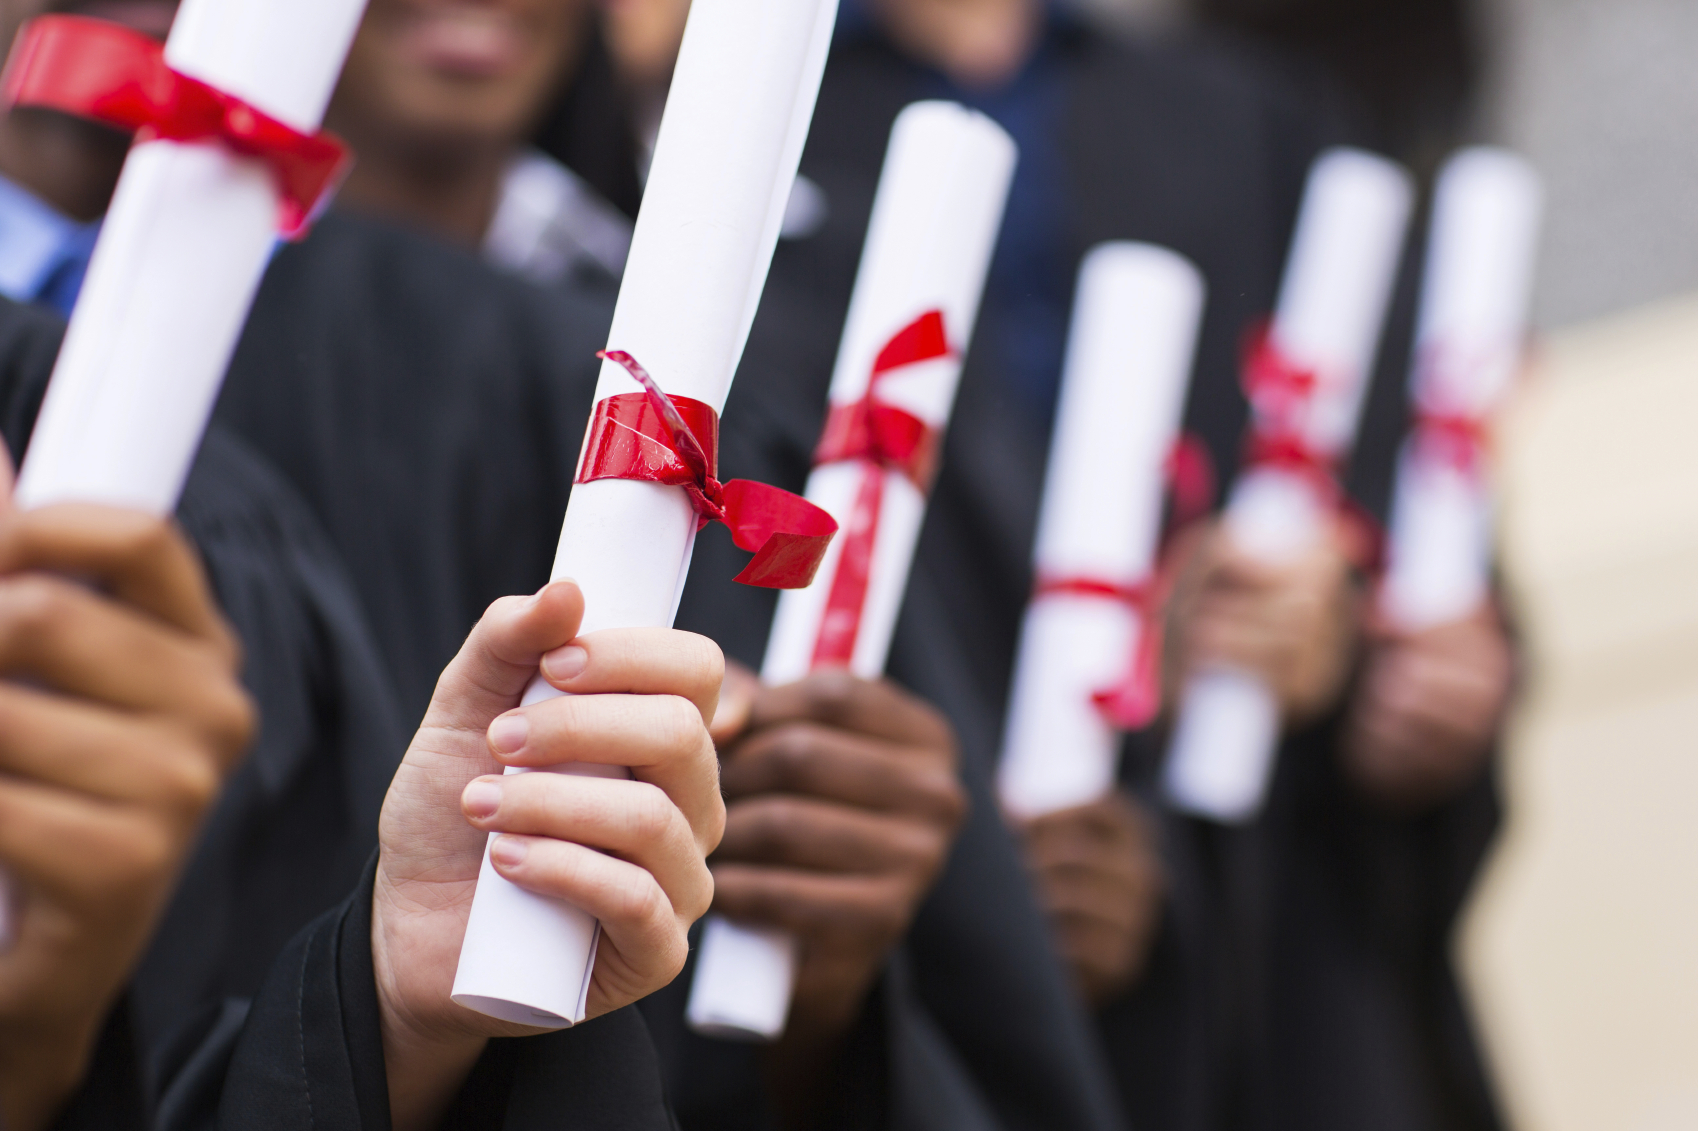 A group of graduates holding diploma. (stock image)